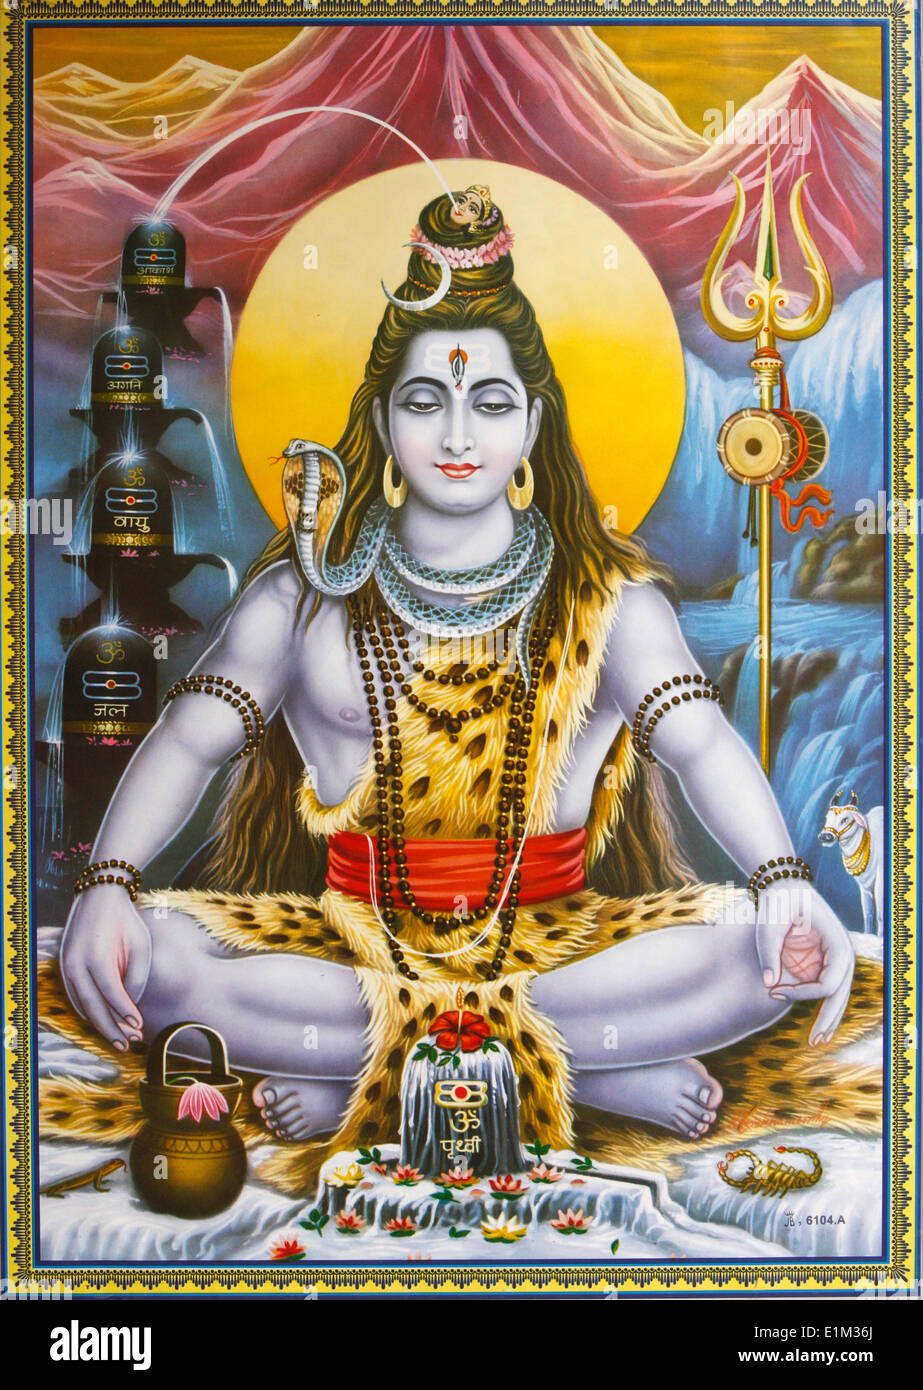 Sitting Shiva picture - Stock Image